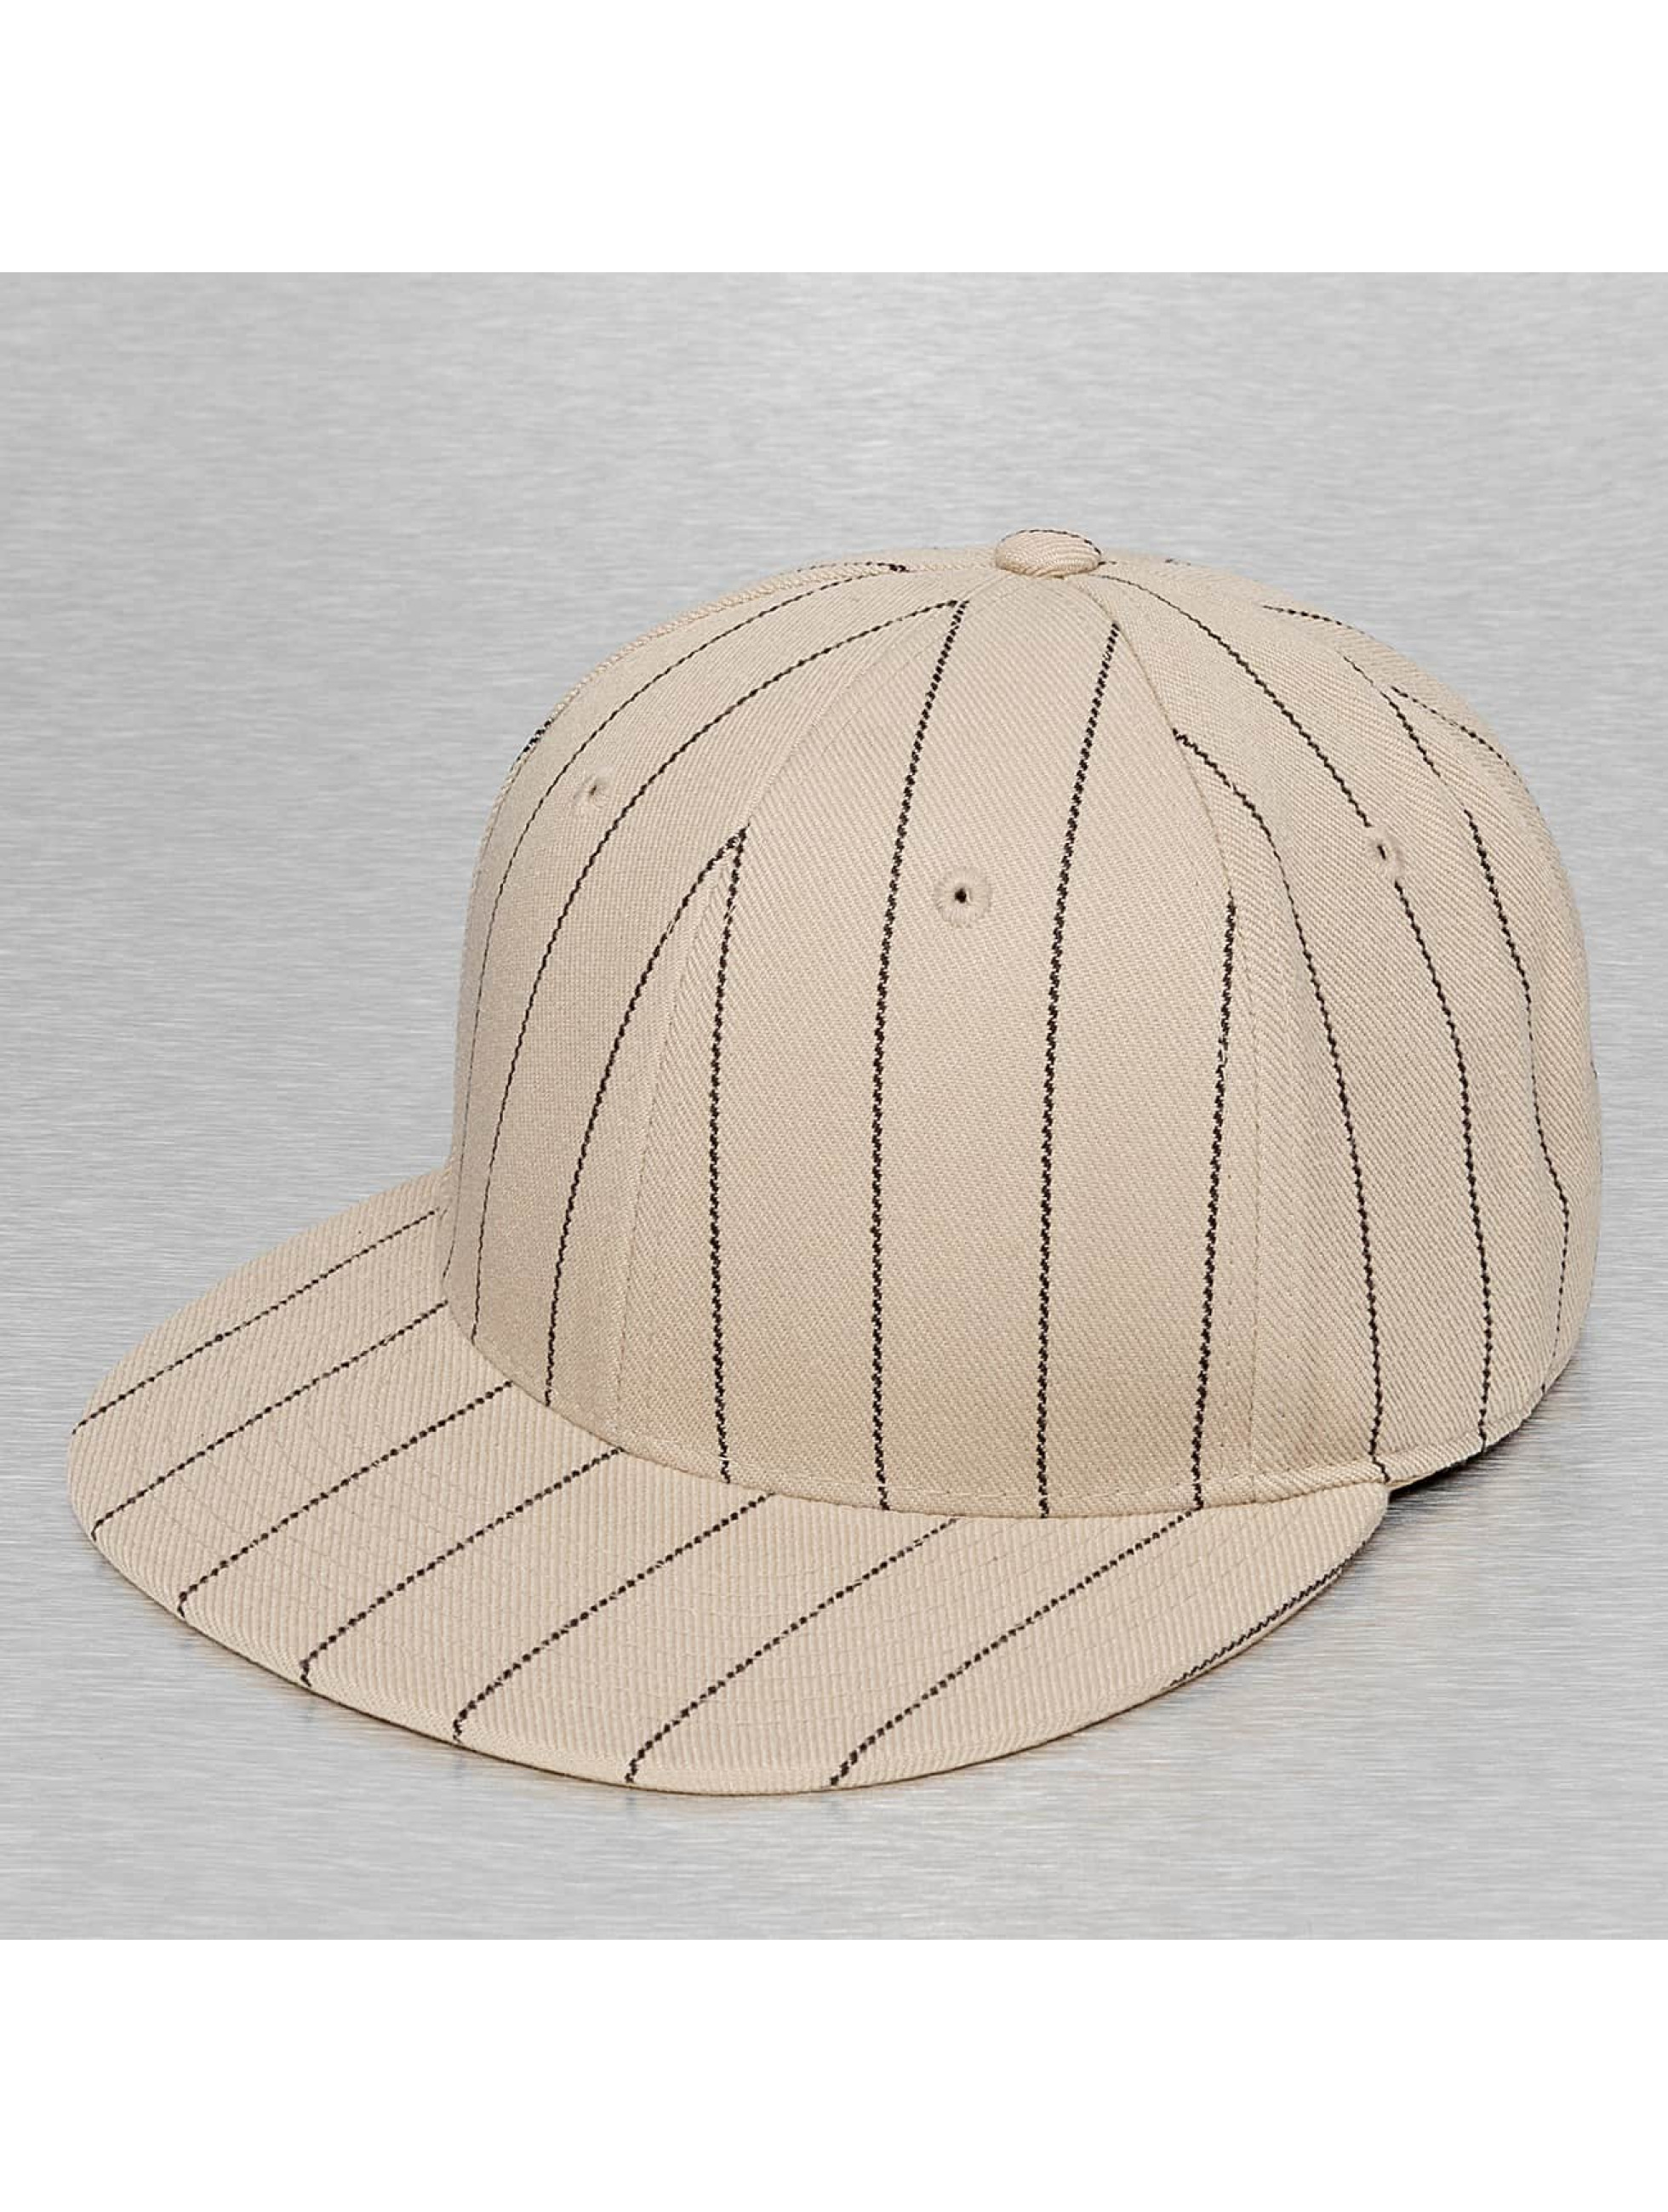 Cap Crony Männer,Frauen Fitted Cap Pin Striped in khaki